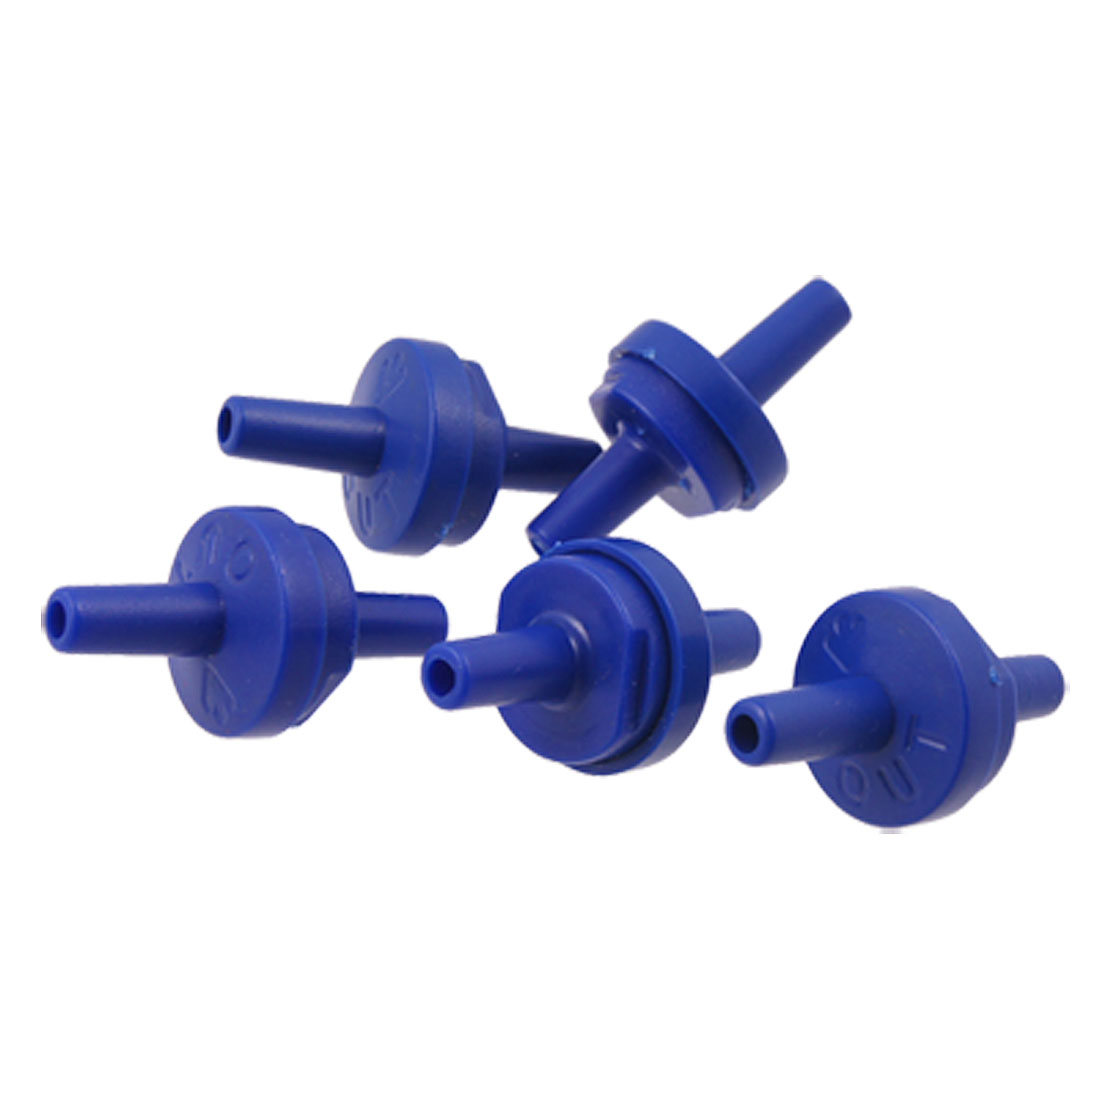 5PCS Plastic Non-Return Aquarium Air Pump Check Valves